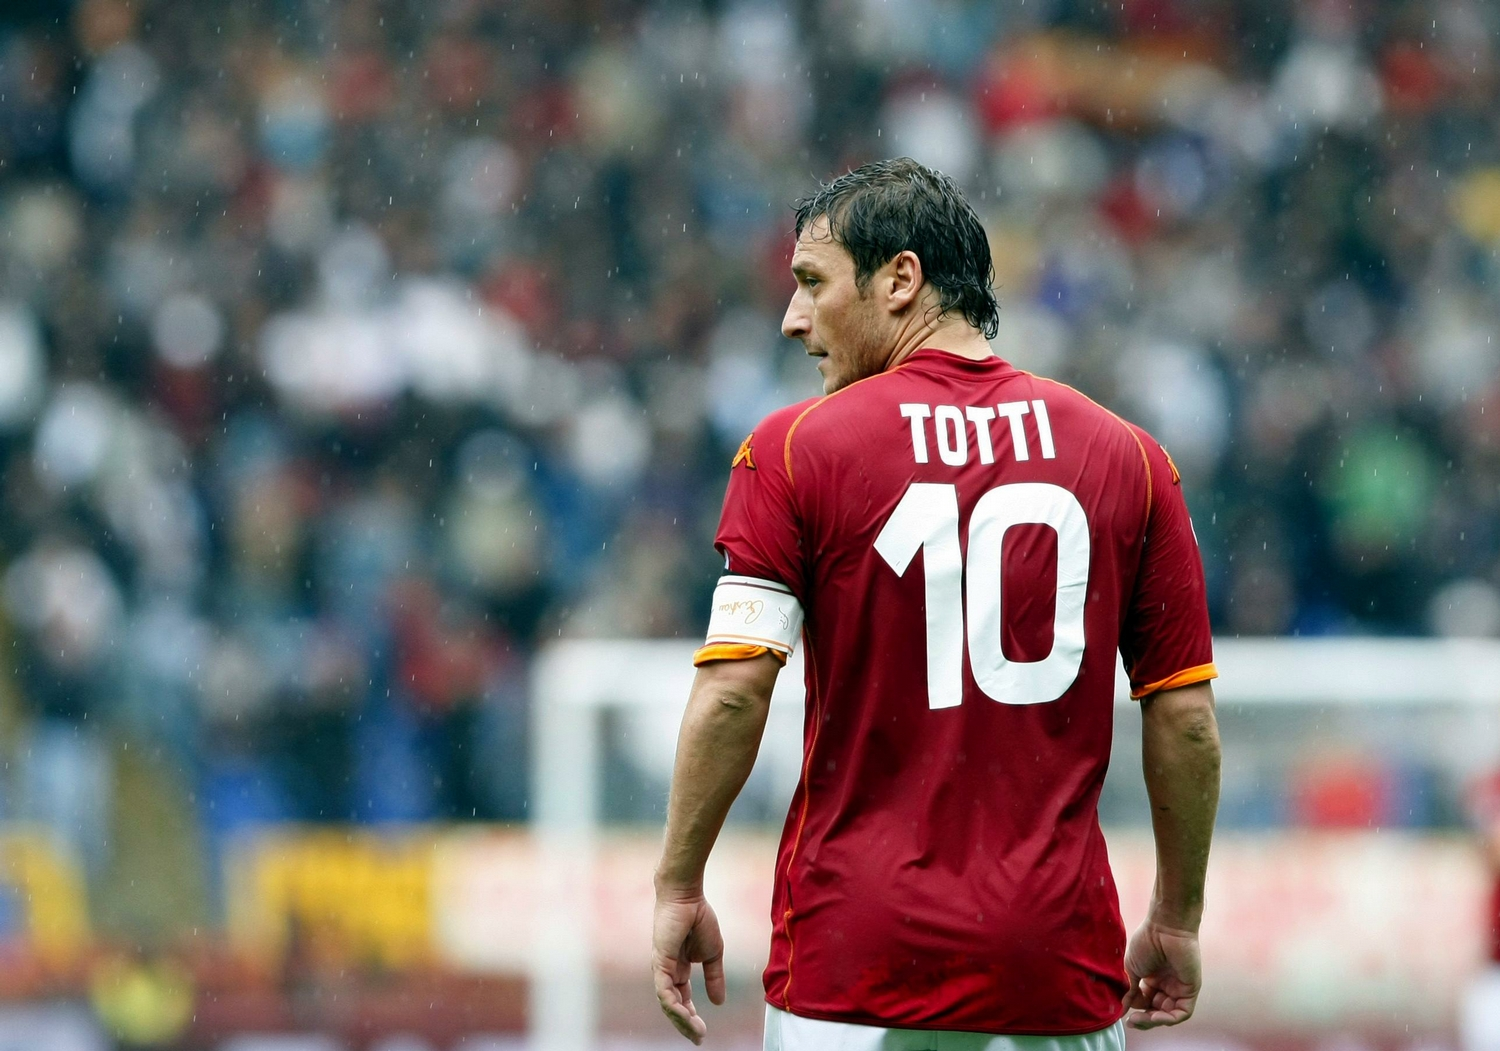 Francesco Totti opens up on the biggest regret of his career